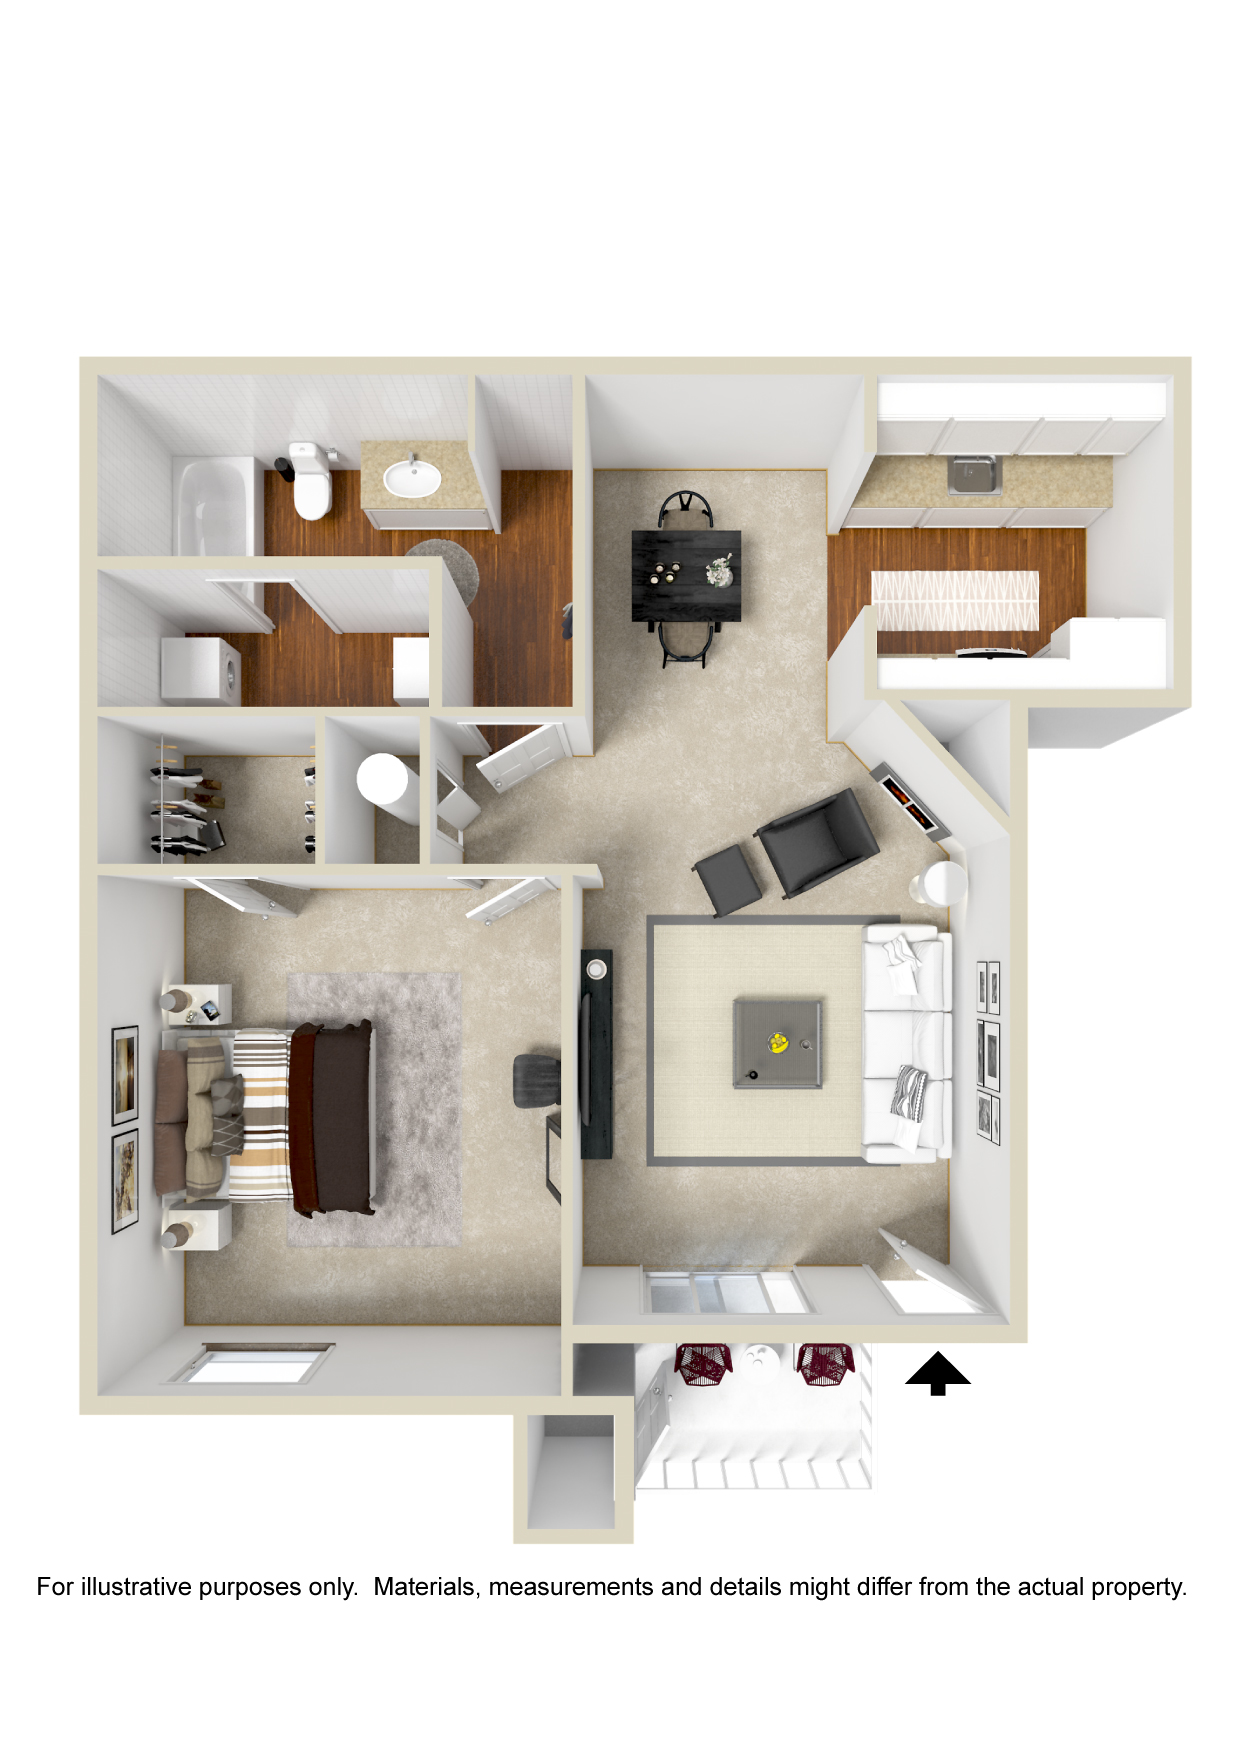 Floorplan - Plan A3 image